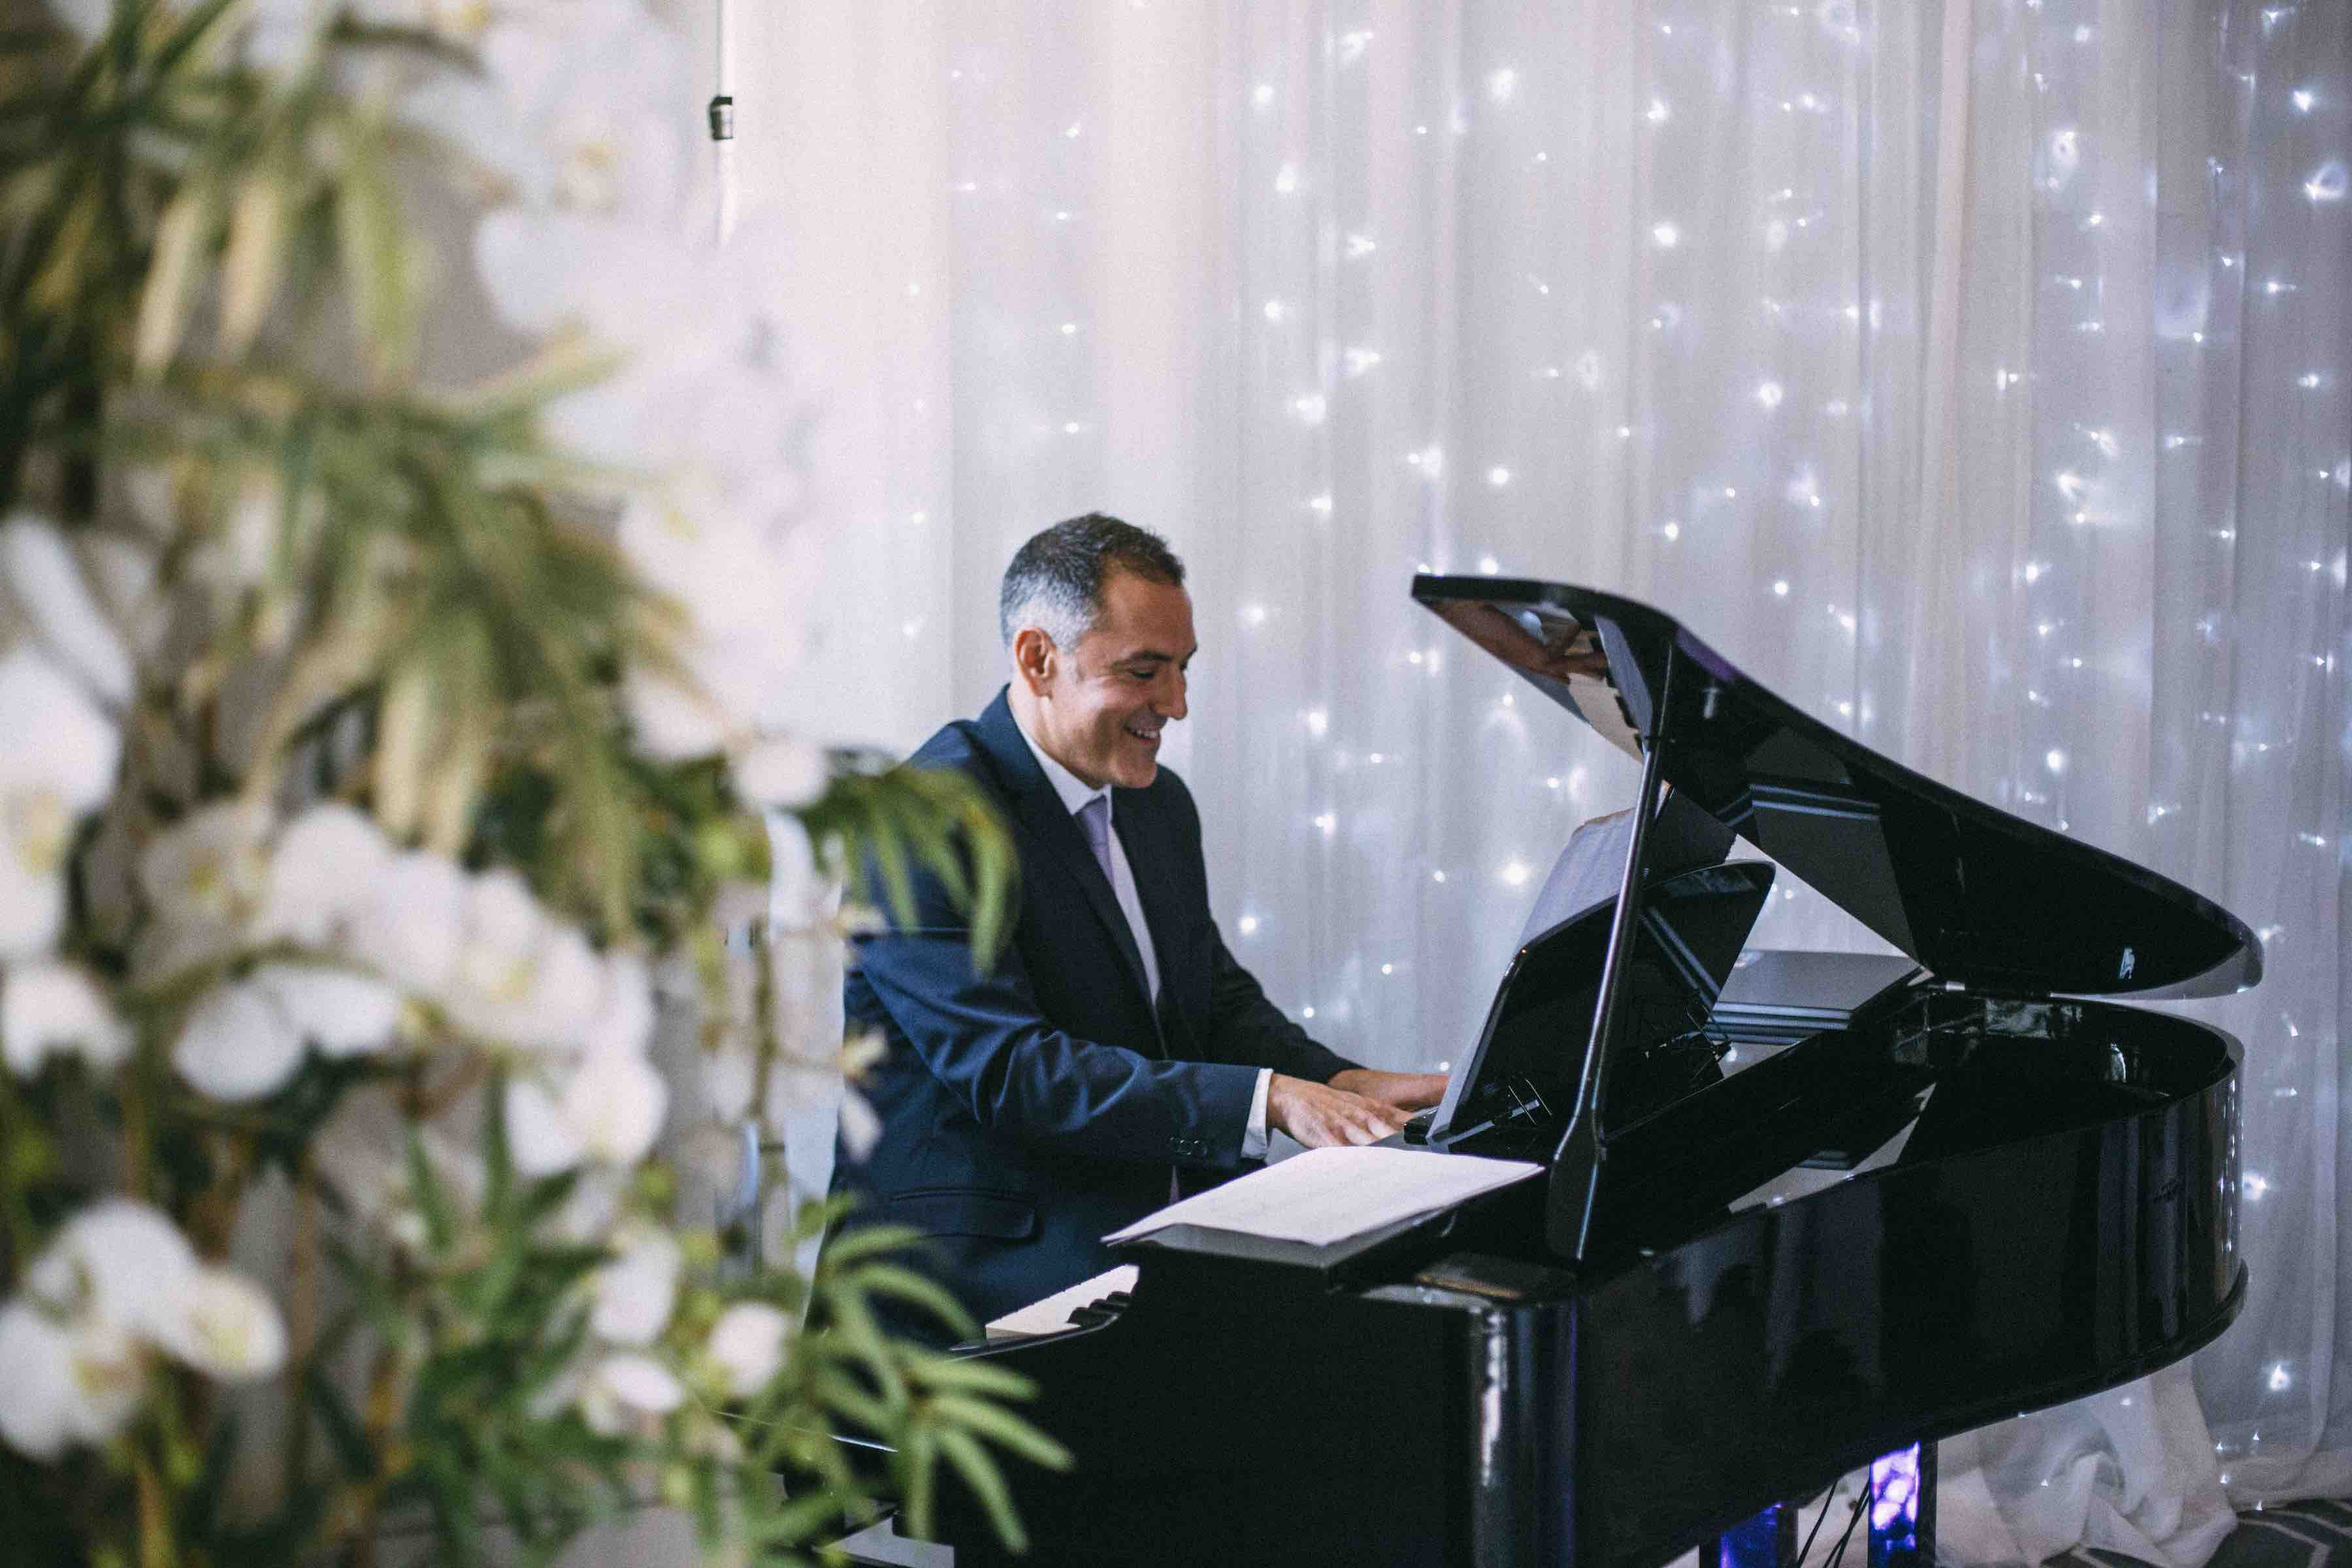 Playing-digital-baby-grand-Dale-Abs-wedding